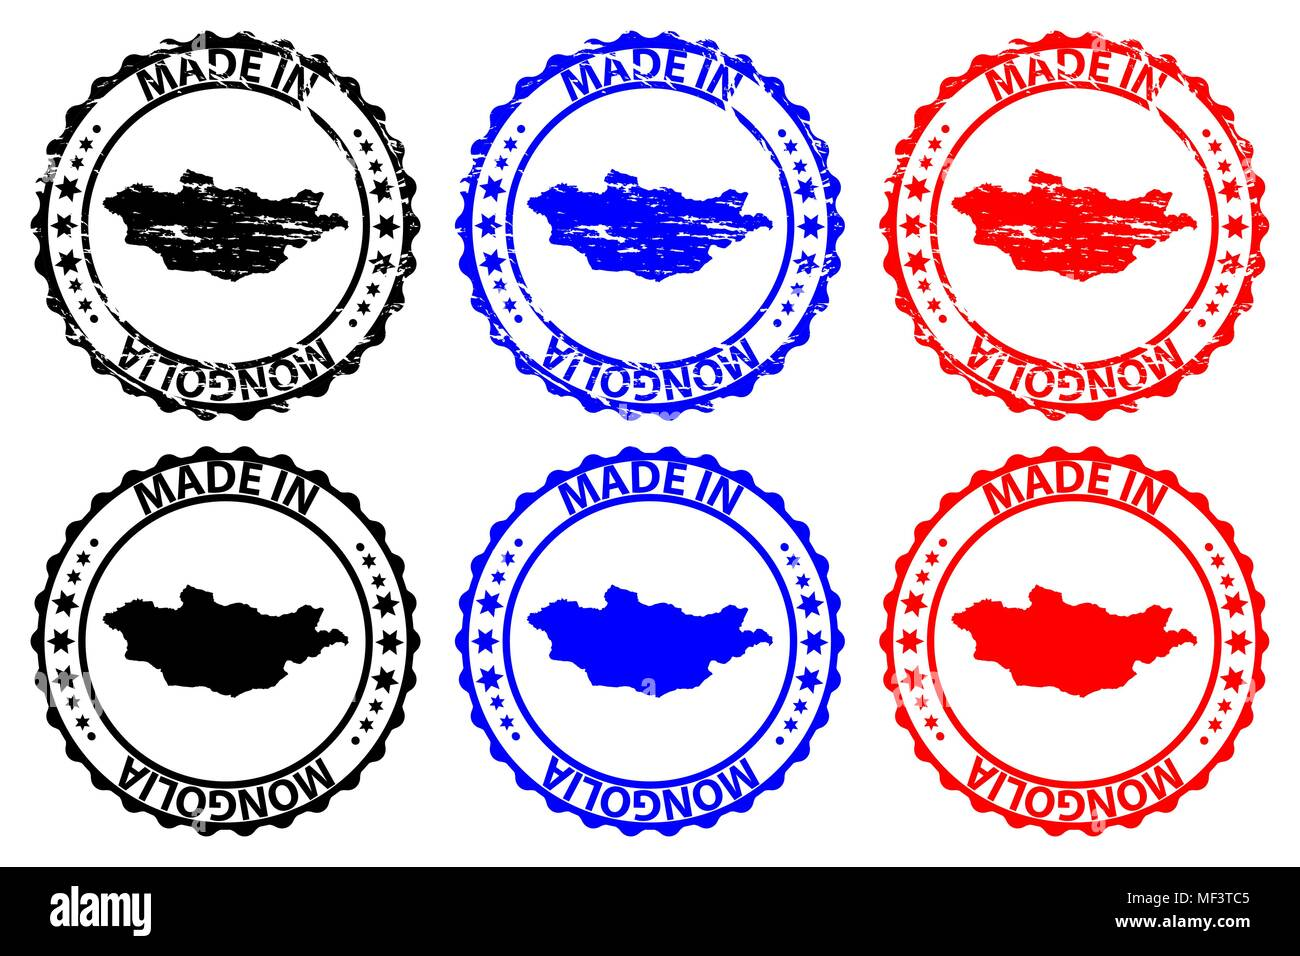 Made in Mongolia - rubber stamp - vector, Mongolia map pattern - black, blue and red Stock Vector